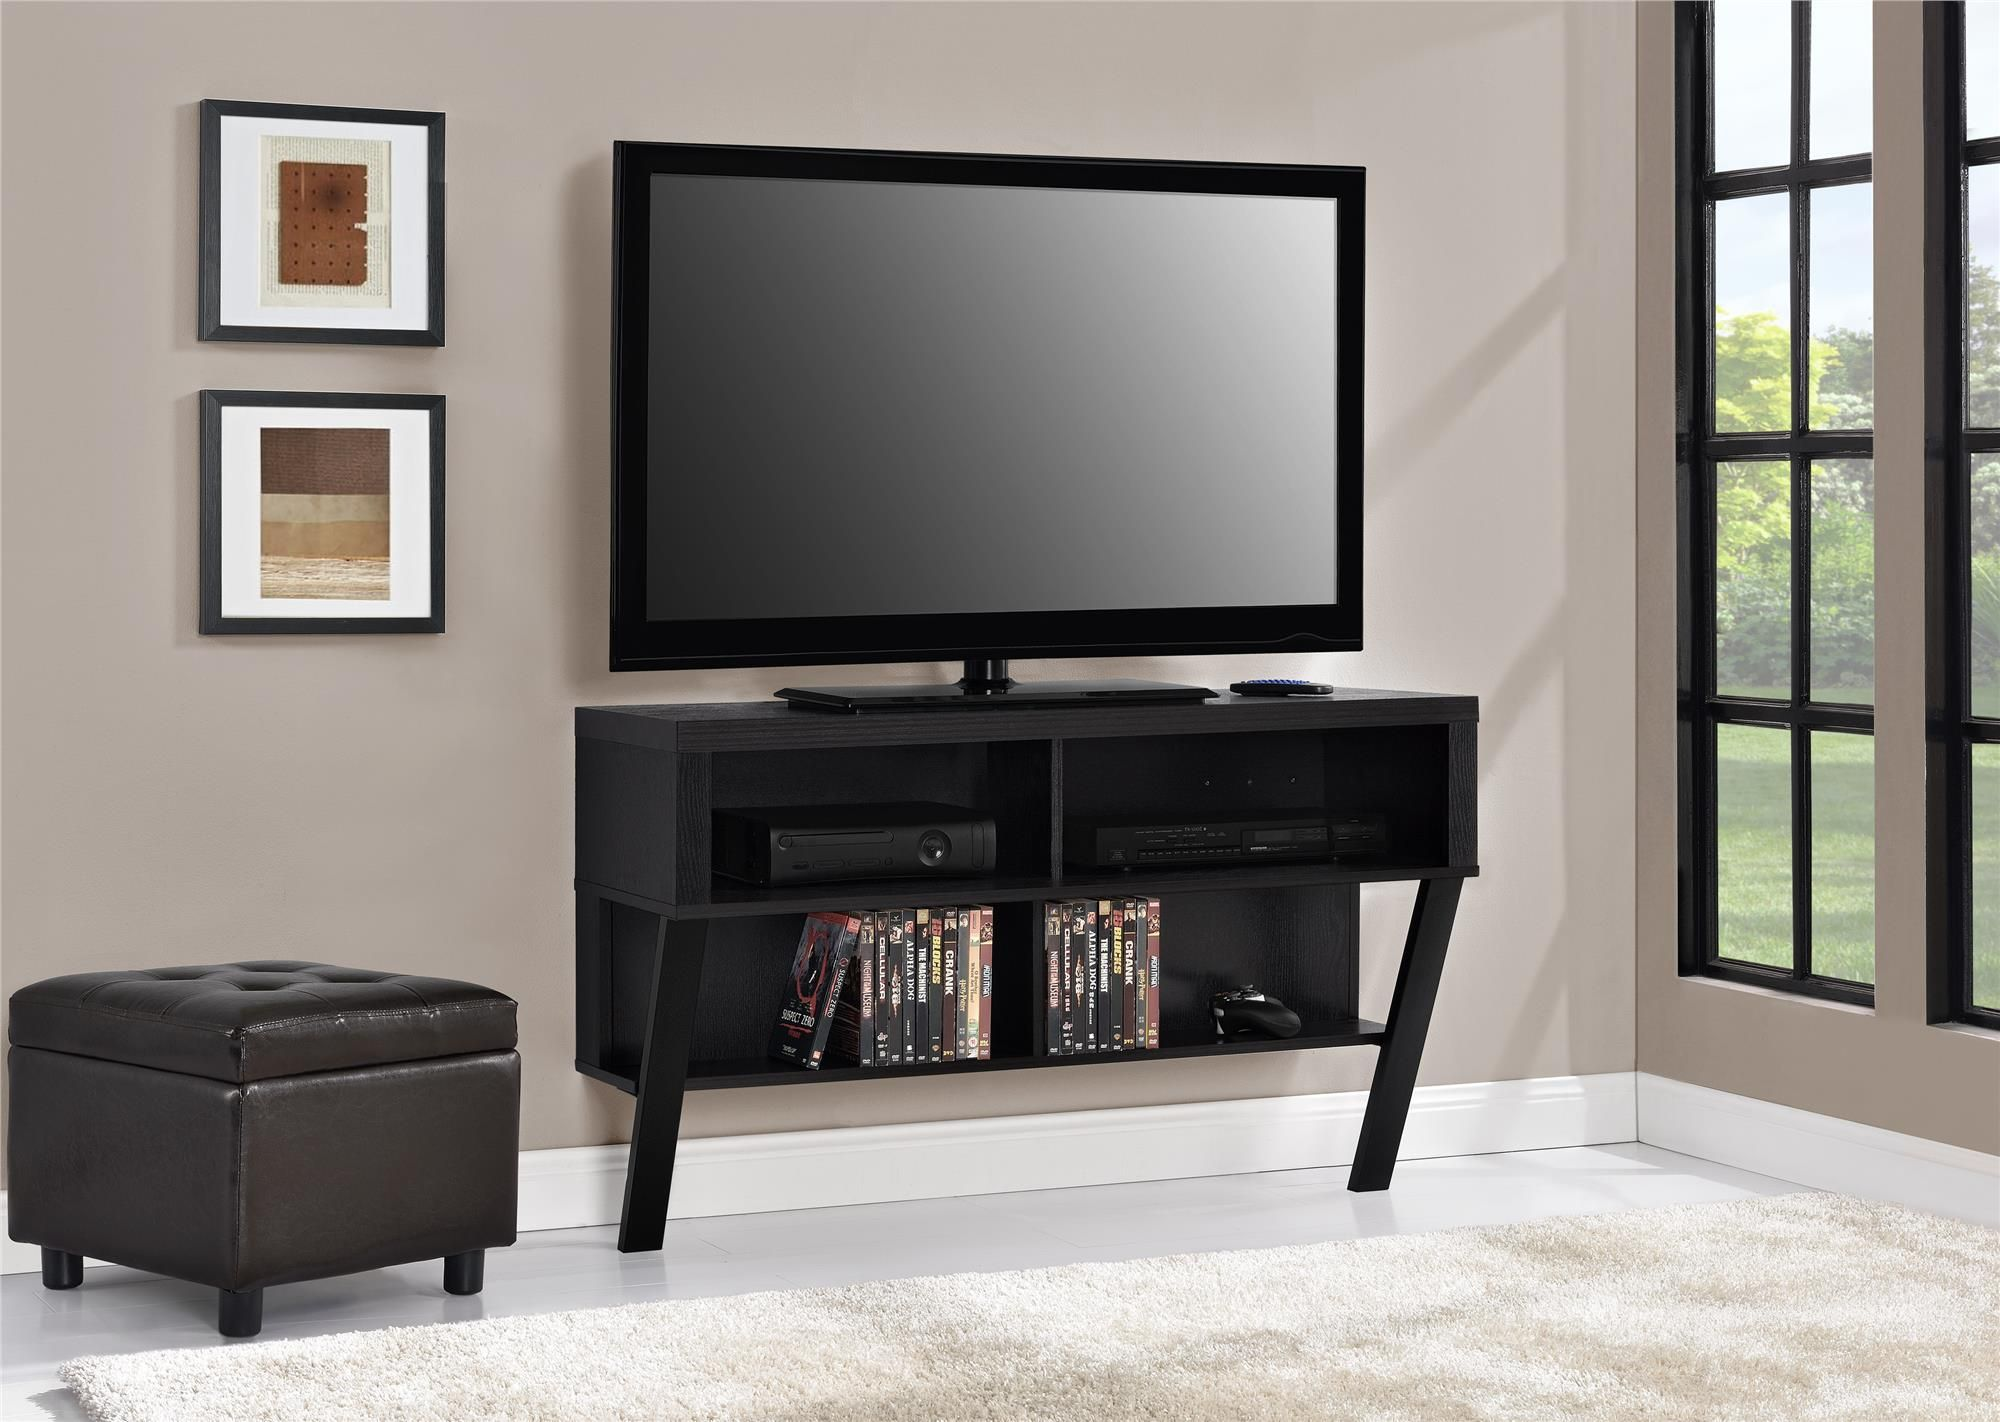 Perfect For Small Spaces The Ameriwood Home Layton Wall Mounted Tv Stand For Tvs Up To 47 Wall Tv Stand Wall Mount Tv Stand Wall Mounted Tv